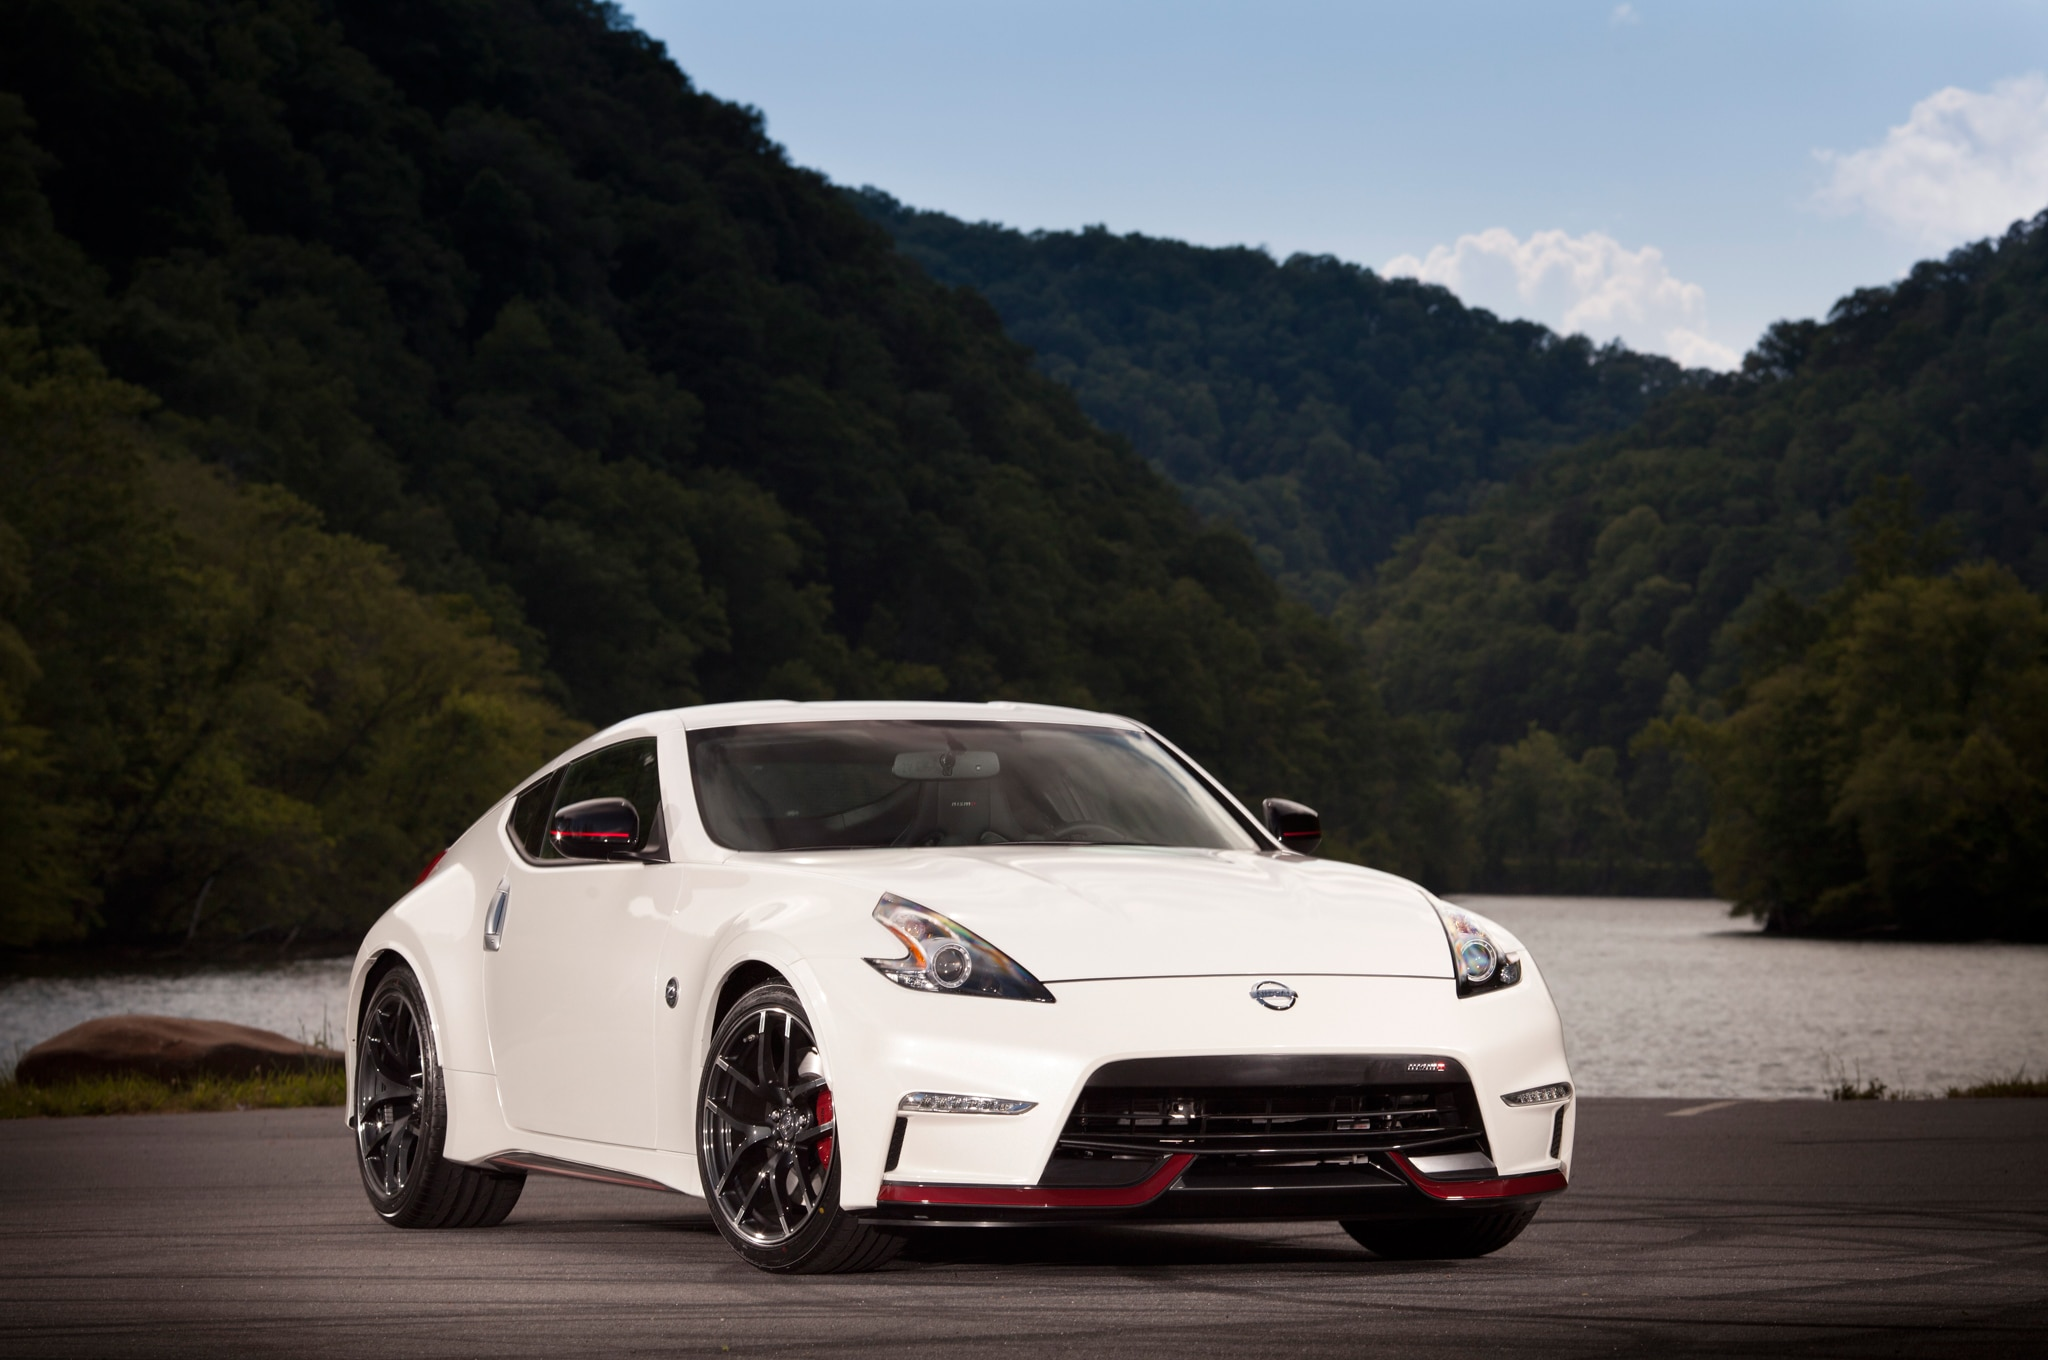 2015 nissan 370z nismo price falls 1030 to 42 800. Black Bedroom Furniture Sets. Home Design Ideas